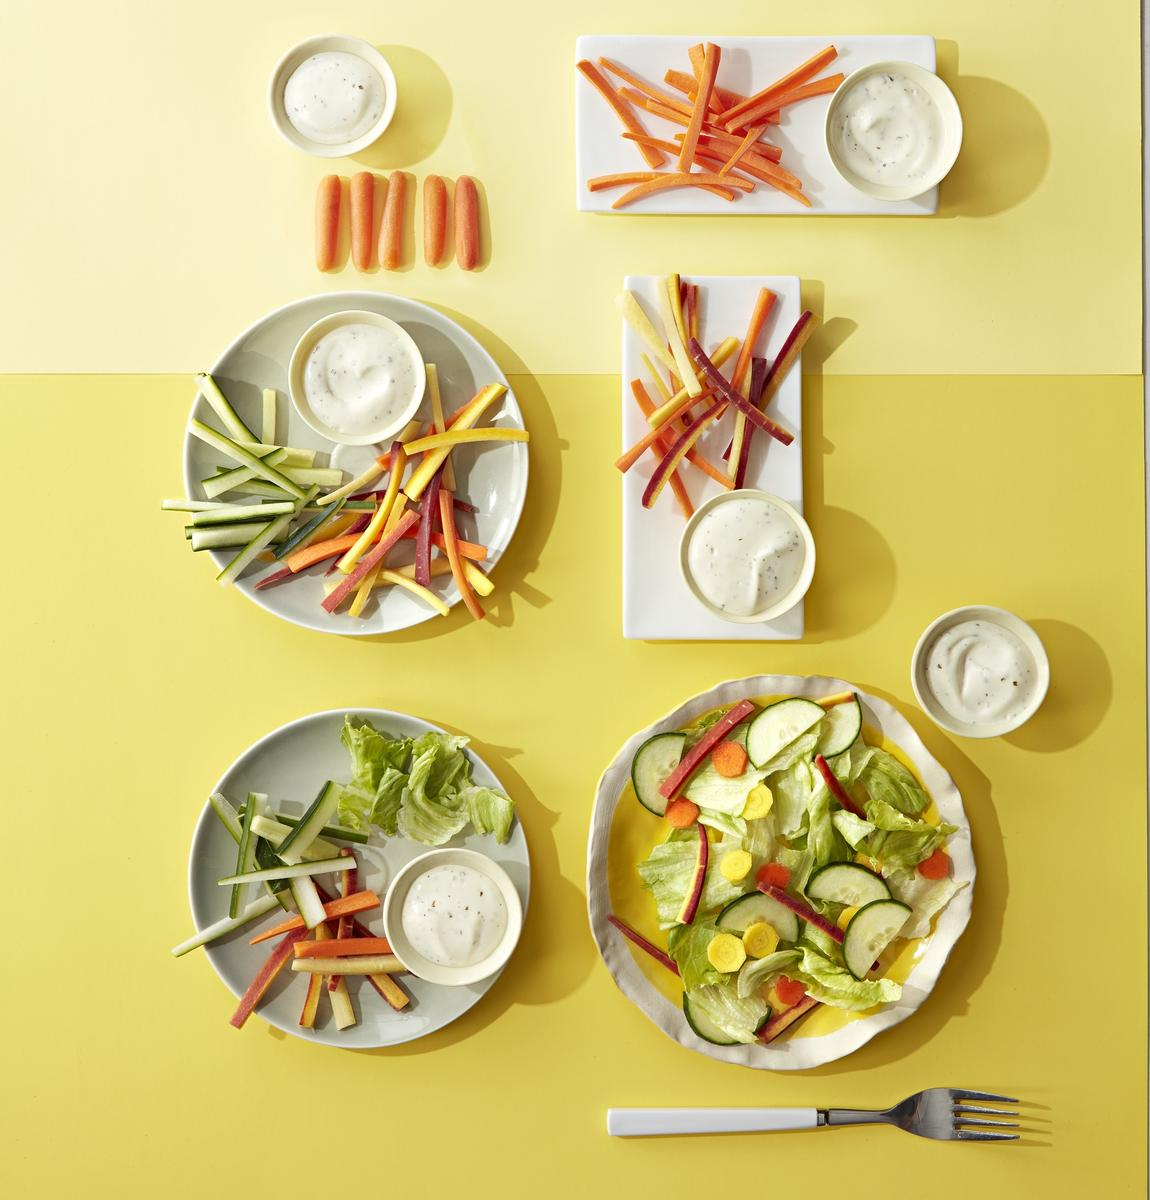 From Baby Carrots to Salad